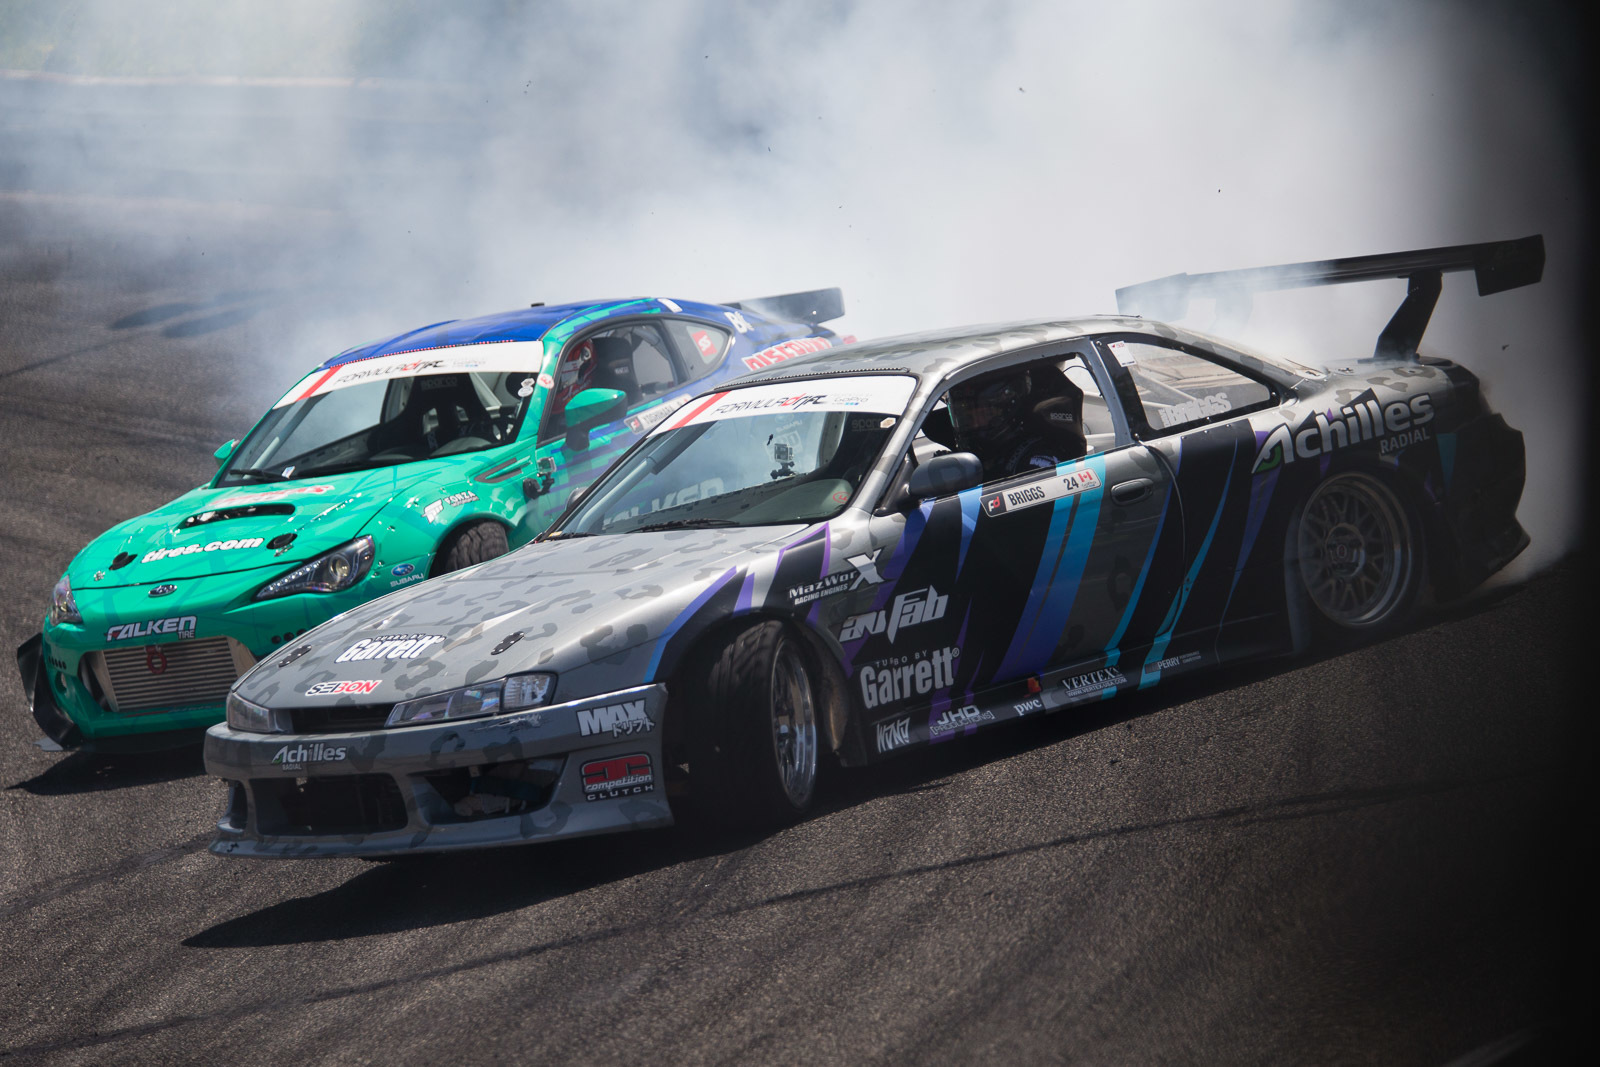 formulad wallnj 2 2014jun21 2432 1 Formula Drift 2014: Canadian Driver Update from Wall, NJ by Authcom, Nova Scotia\s Internet and Computing Solutions Provider in Kentville, Annapolis Valley